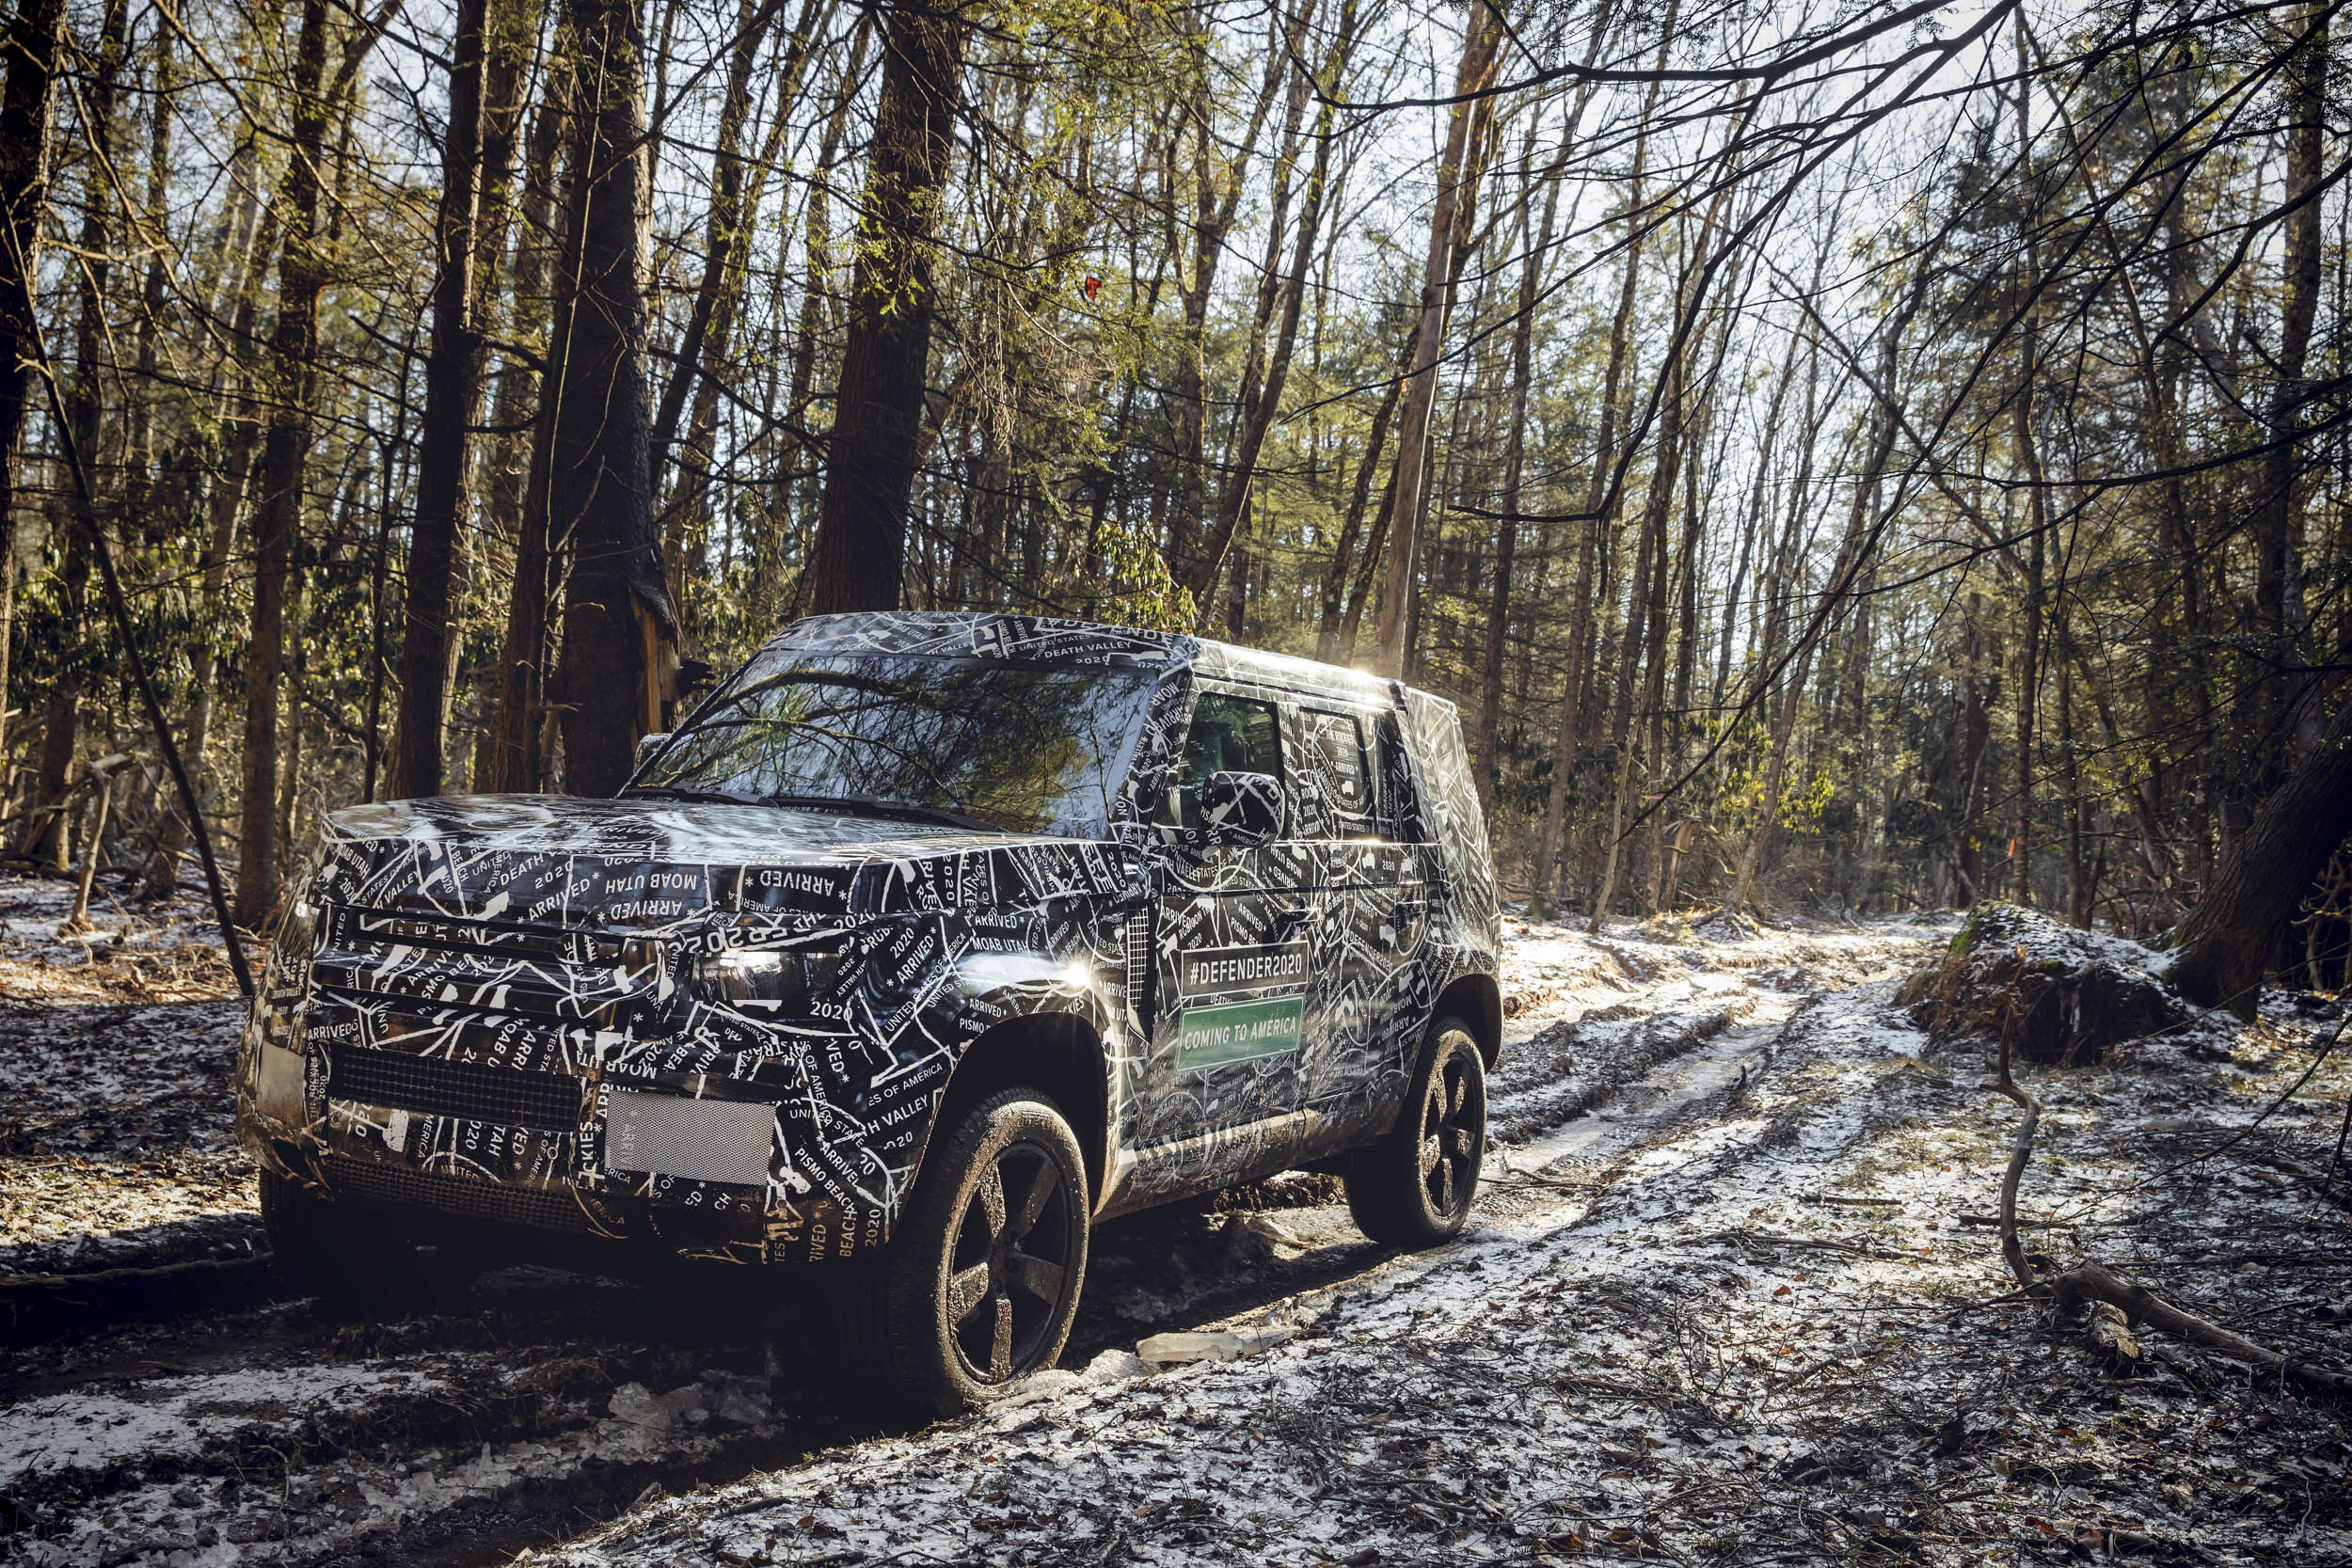 2020 Land Rover Defender driving through the woods